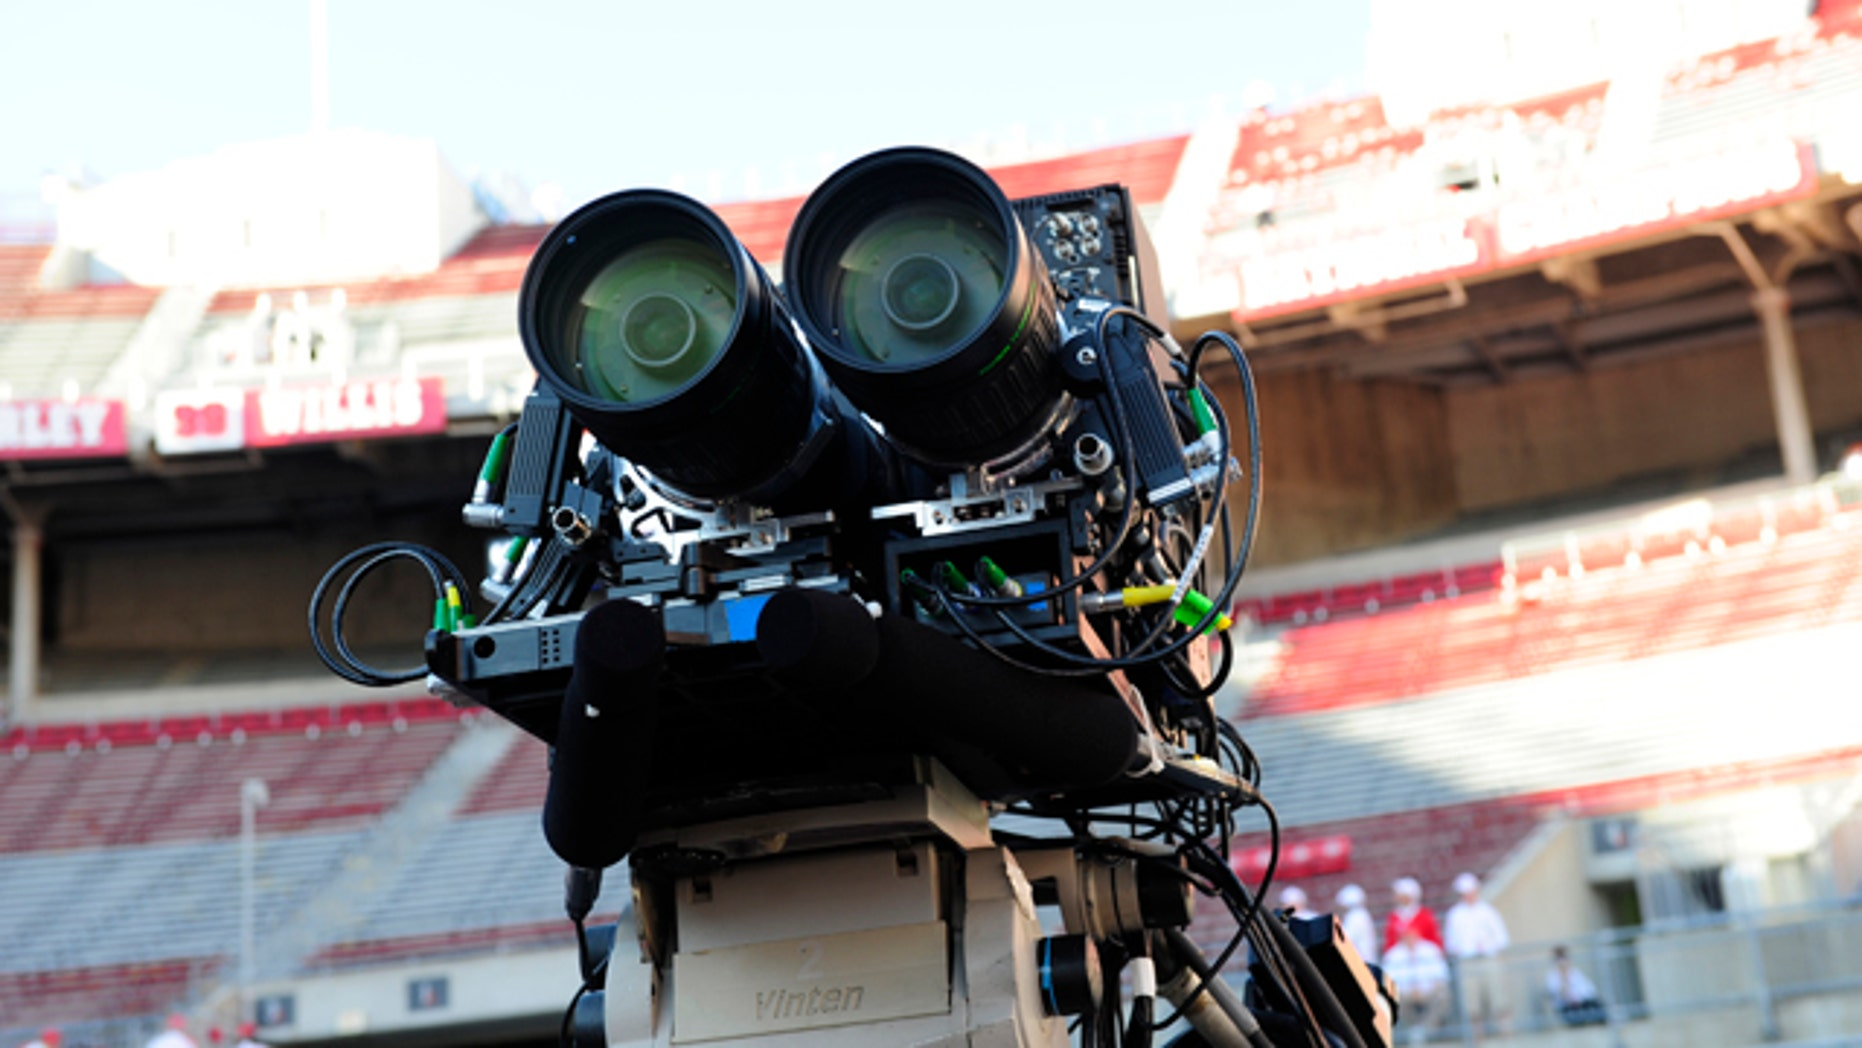 ESPN tests out 3D cameras on Sept. 12, 2009 in Ohio Stadium, Columbus, Ohio